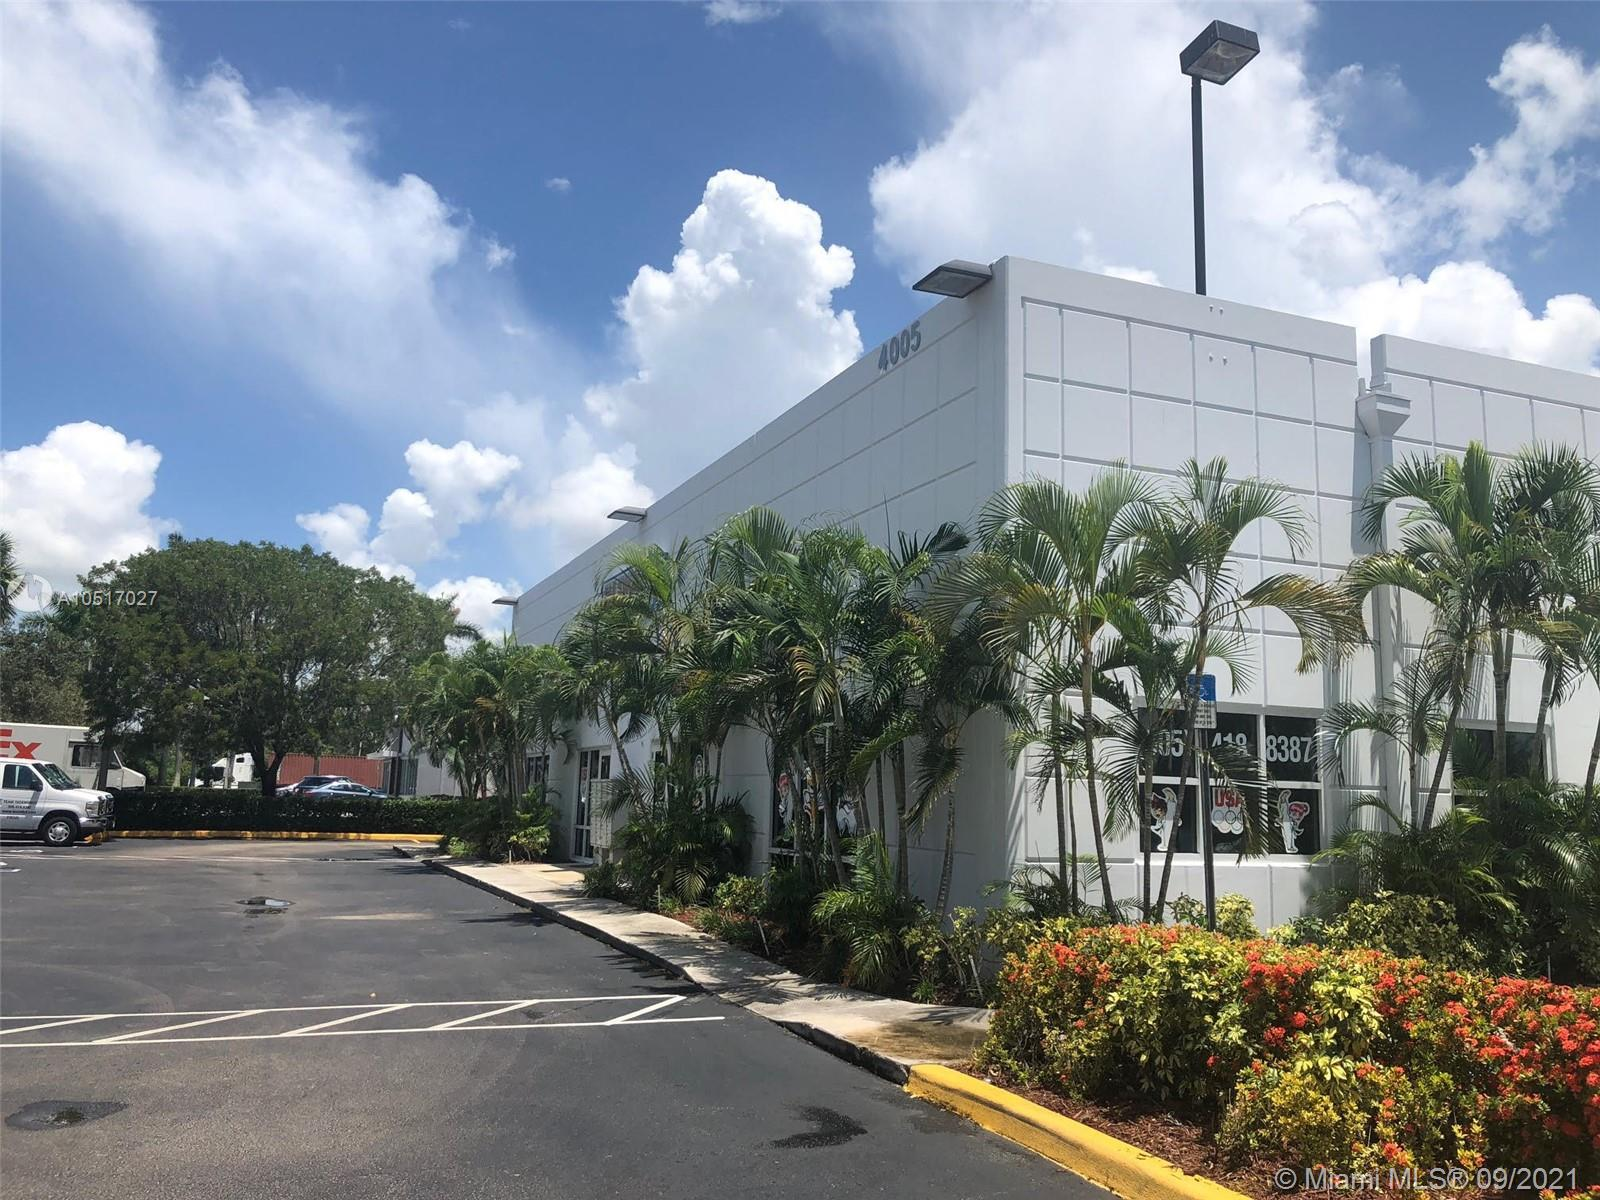 4005 NW 114th Ave, Doral, Florida 33178, ,Commercial Sale,For Sale,4005 NW 114th Ave,A10517027